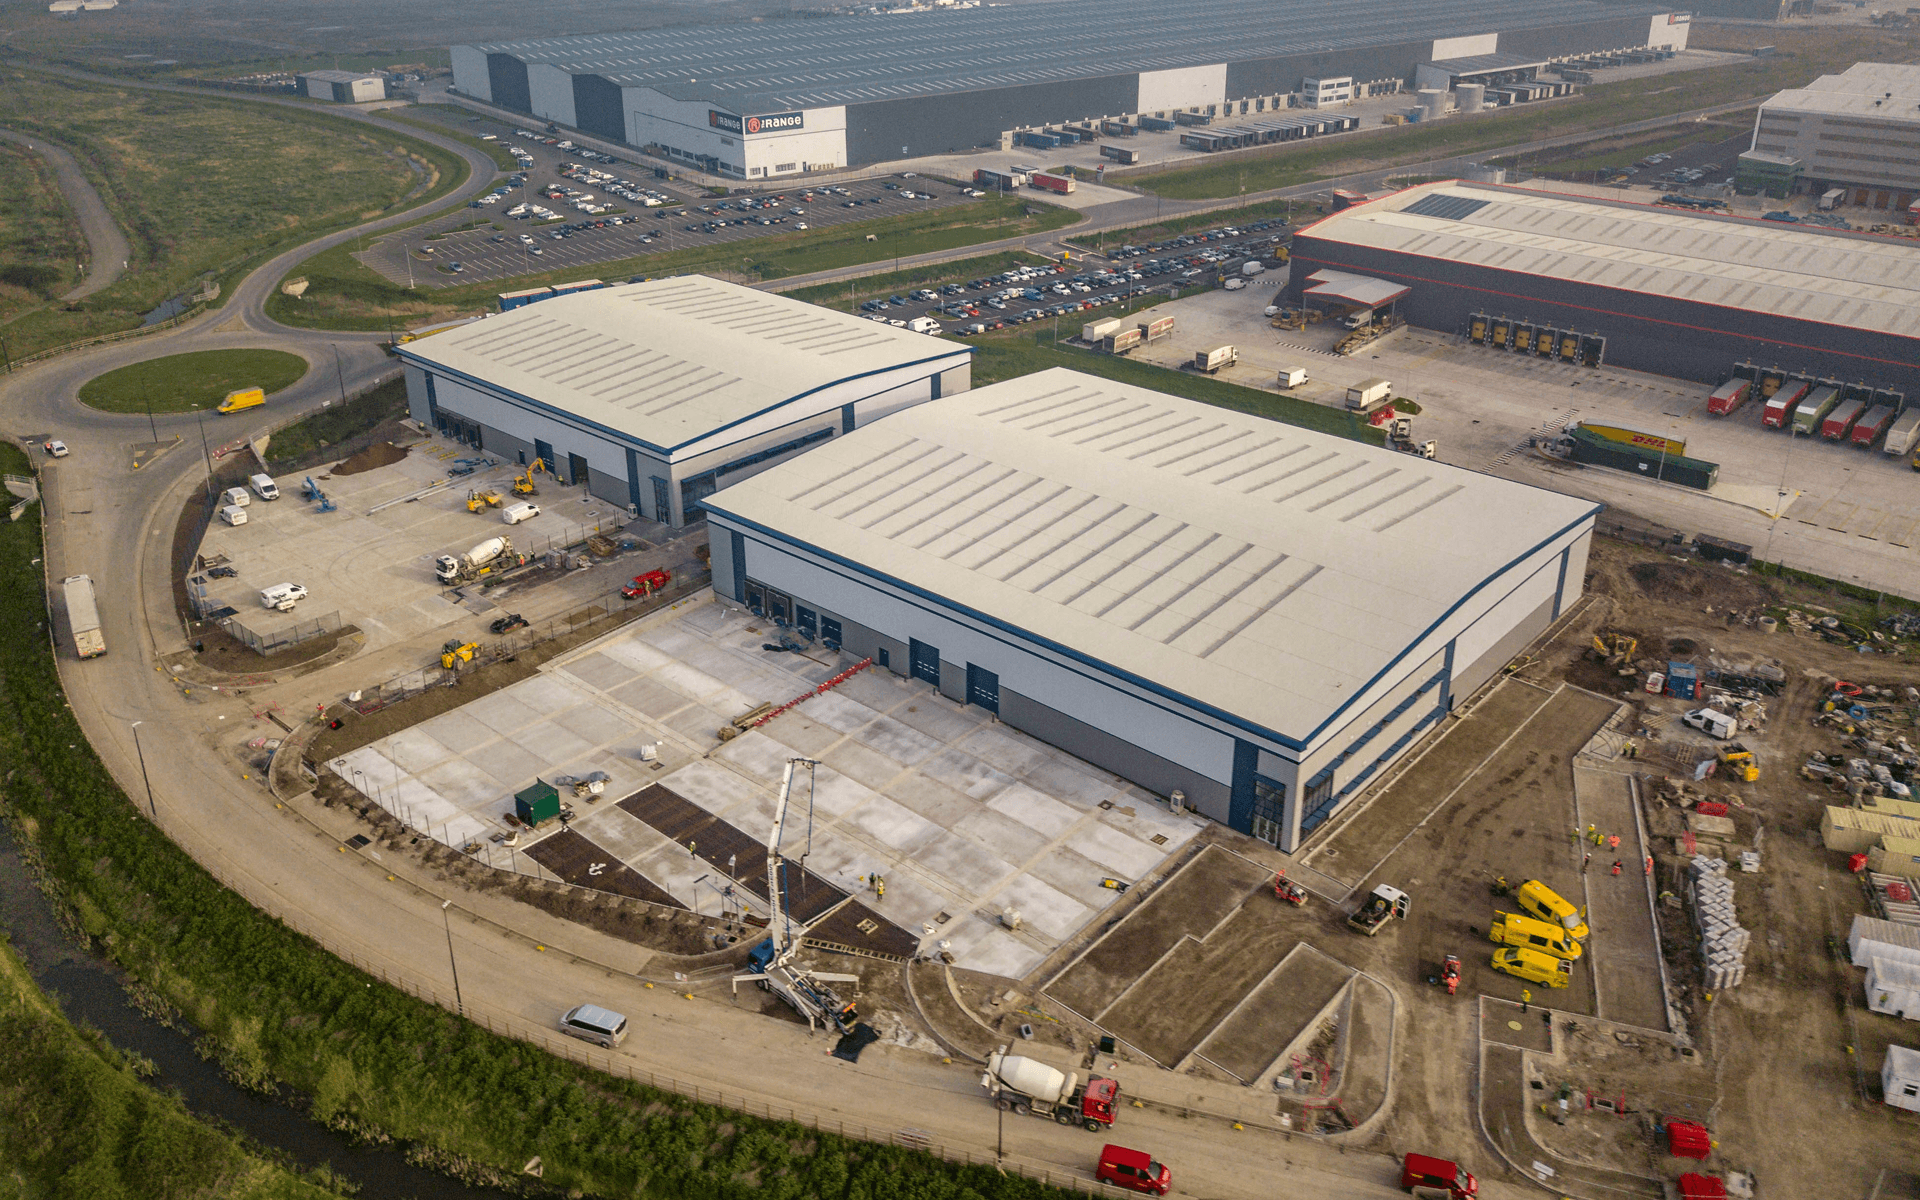 """Mavic Pro"" aerial drone photo of near completion of a ""VINCI"" contruction site of several warehouses in Avonmouth, Bristol"